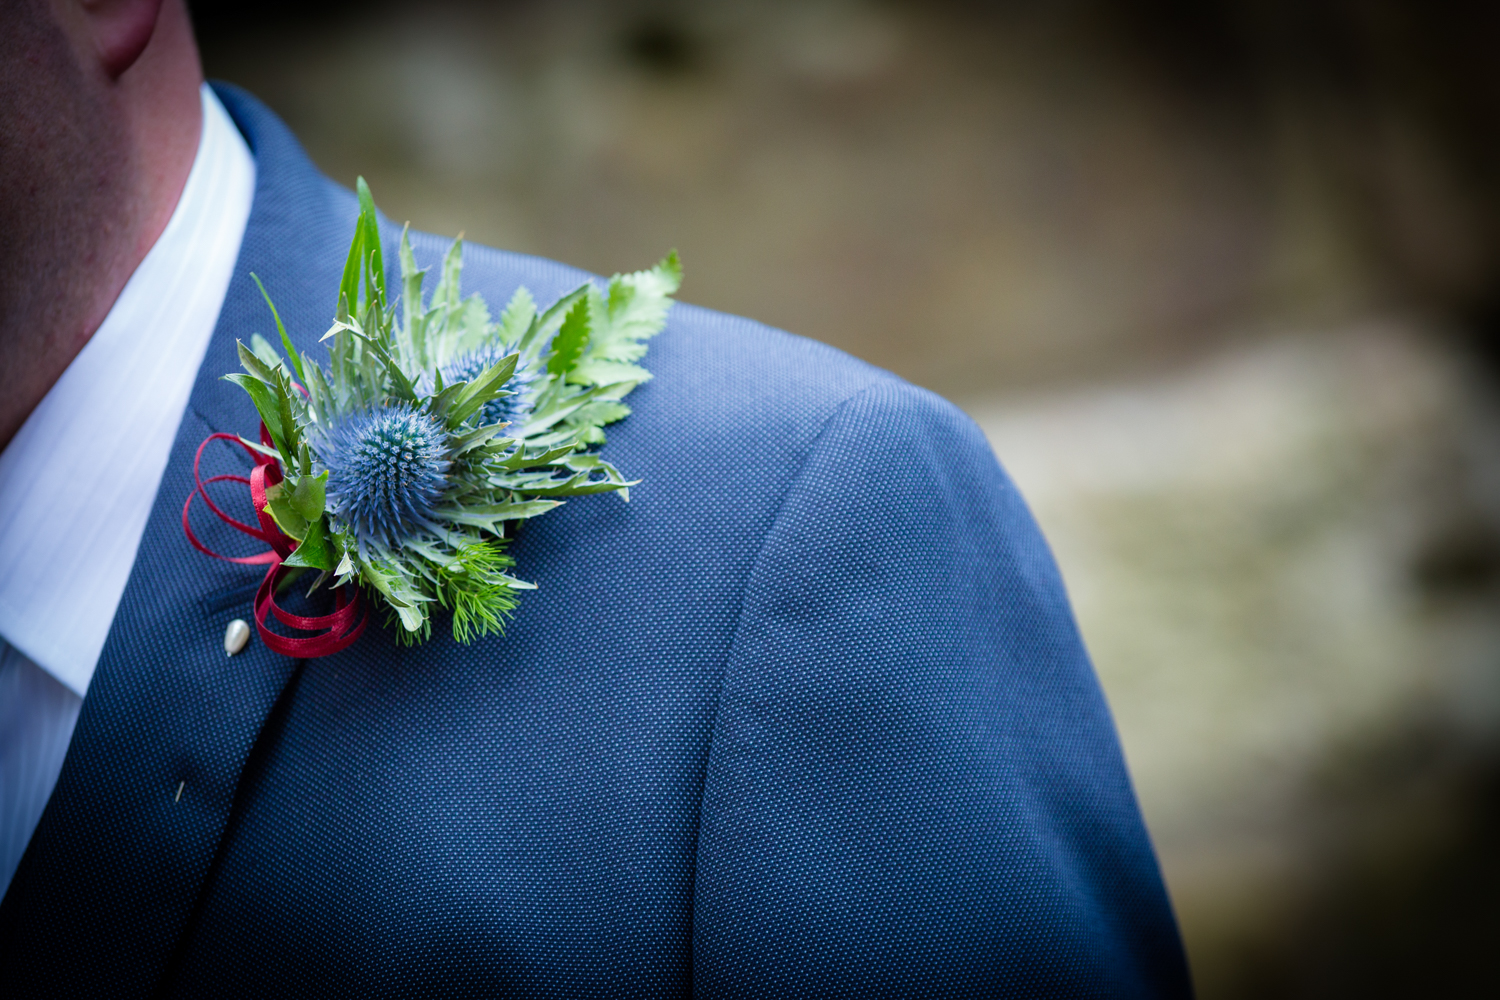 Clare and Charles wedding day blog-5.jpg